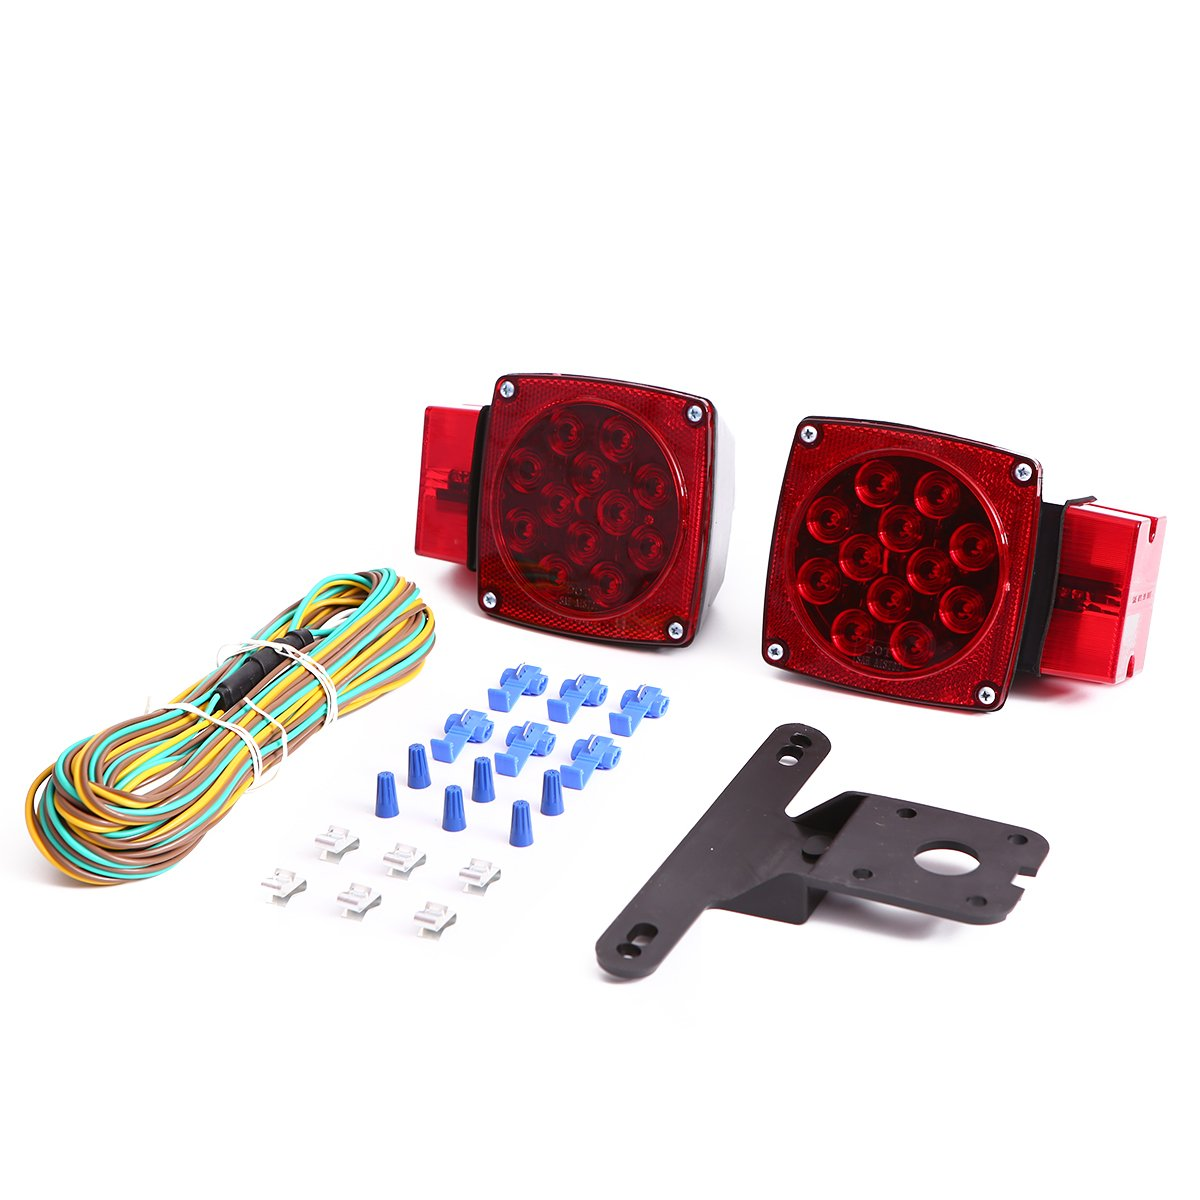 CZC AUTO 12V LED Submersible Trailer Tail Light Kit Stop Tail Turn Signal Lights for Over 80 Inch Boat Trailer Truck RV Marine